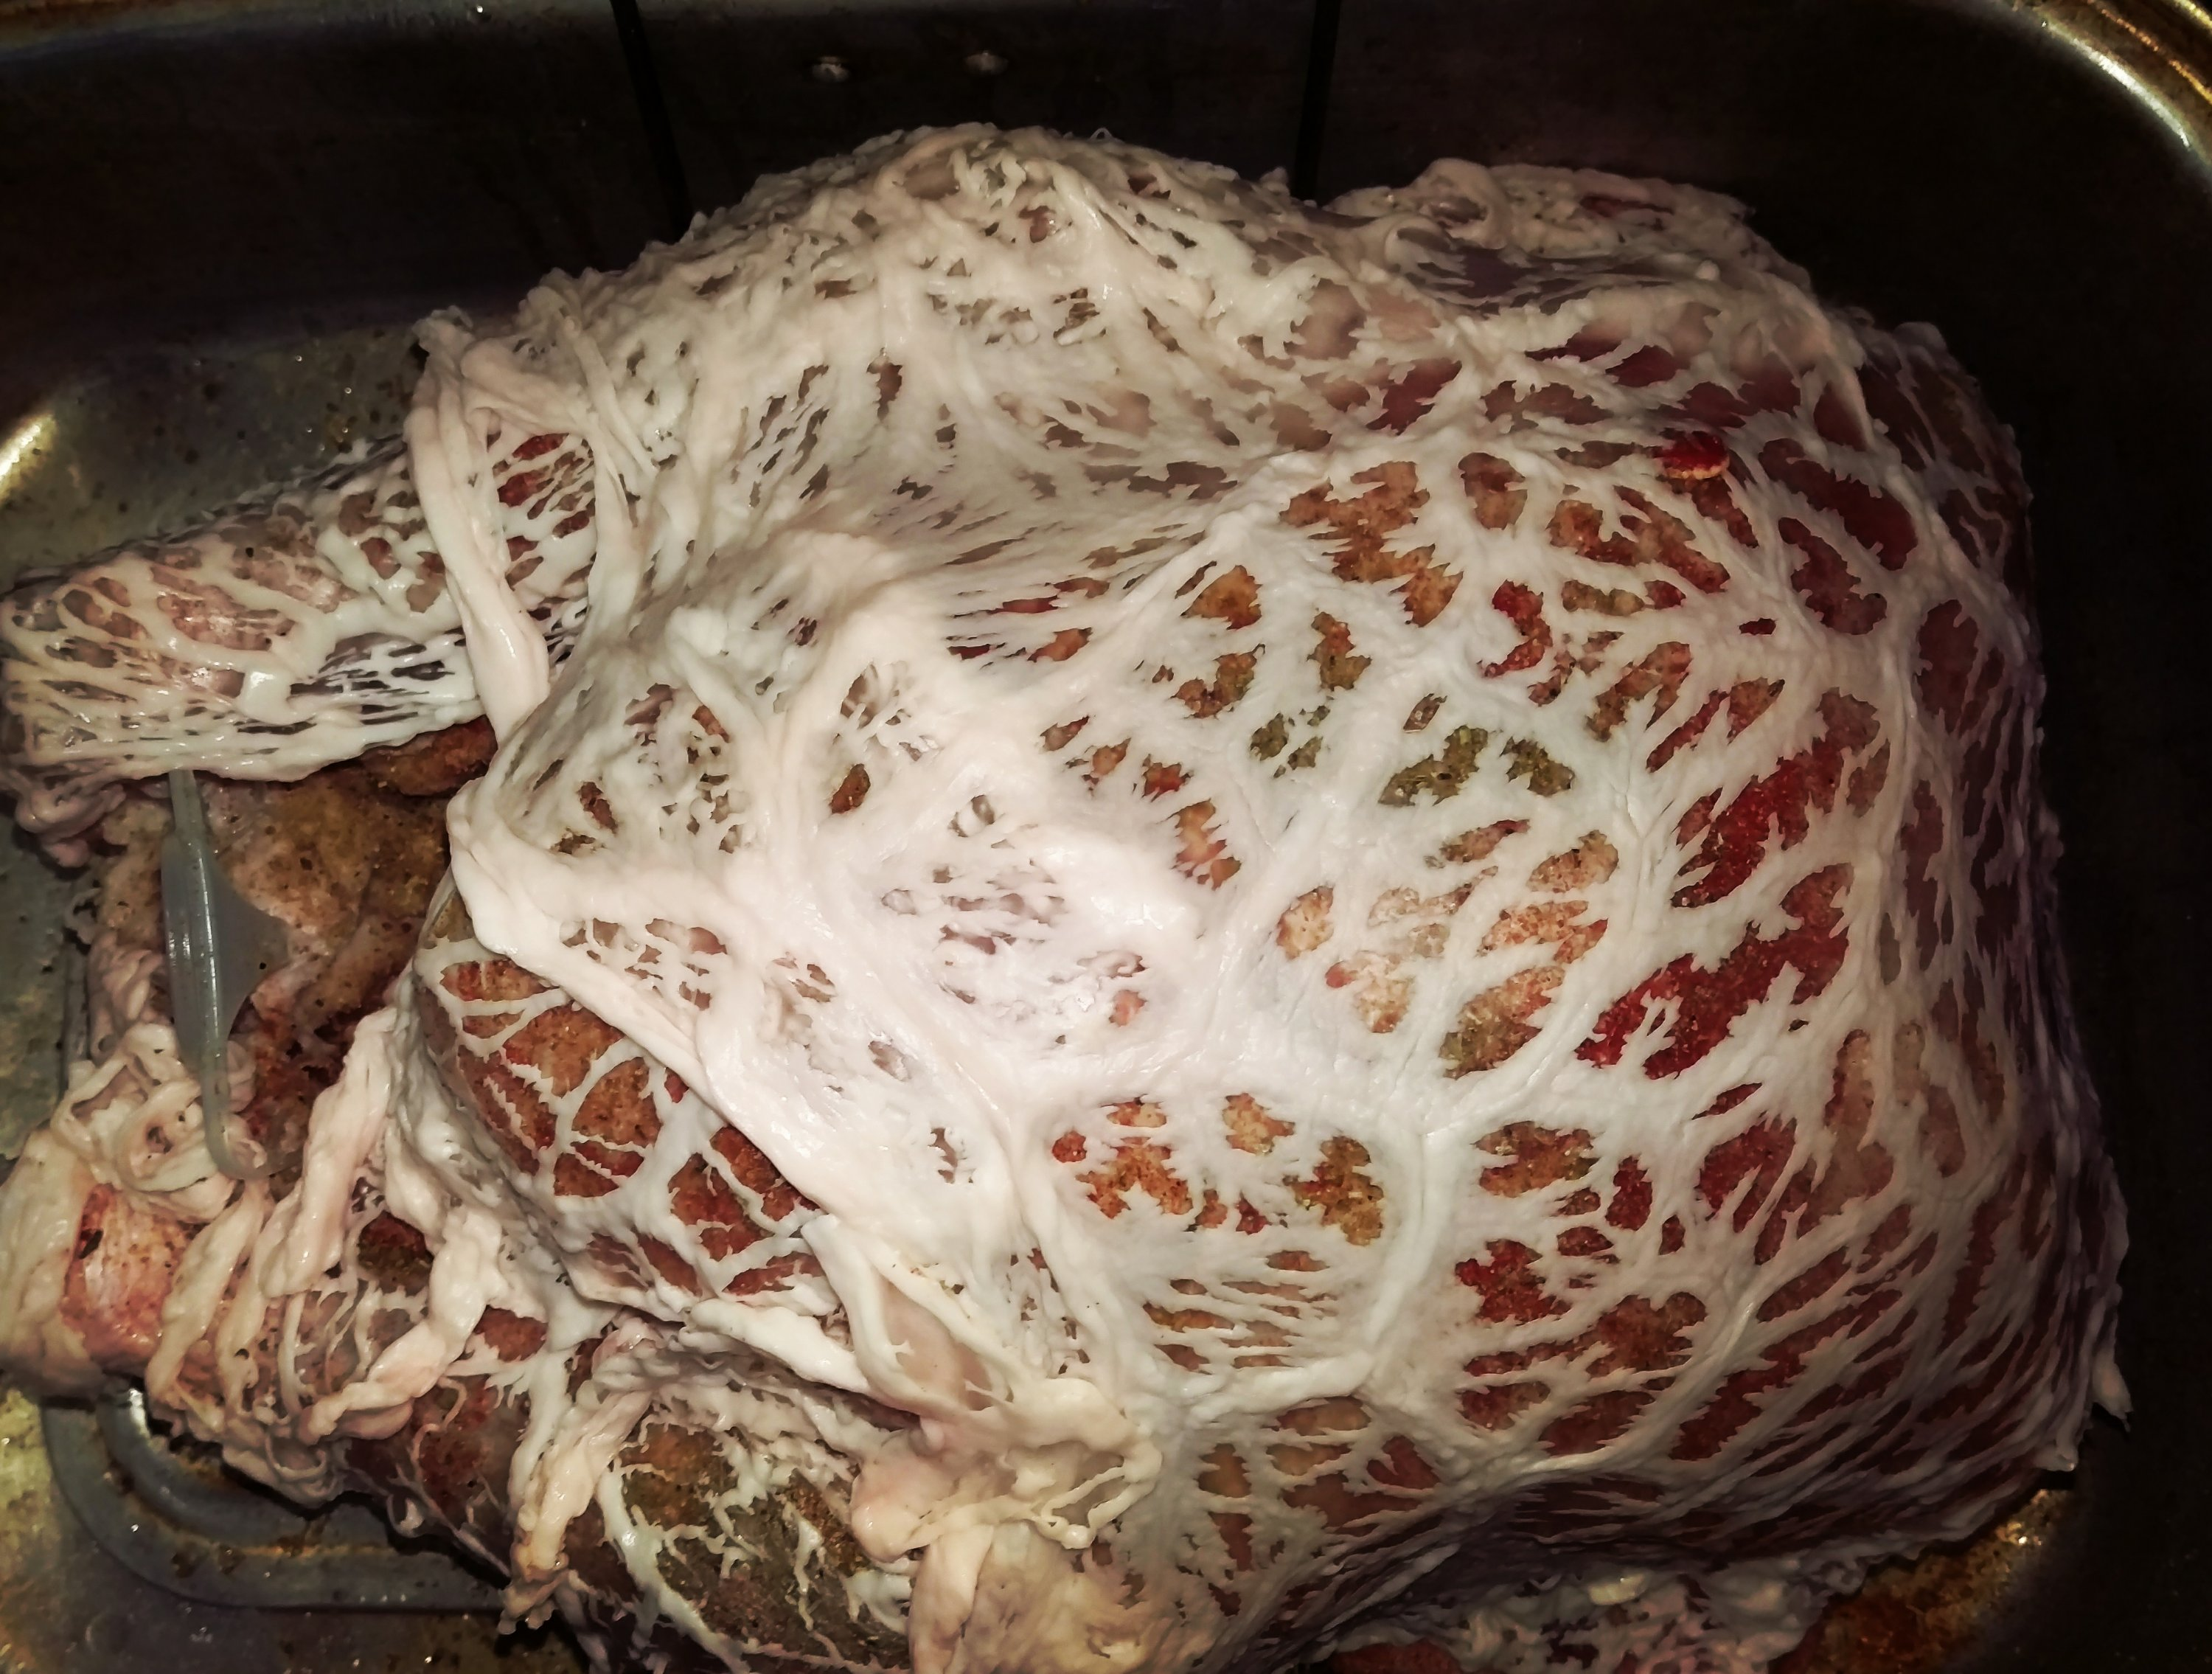 Thanksgiving Turkey in Caul Fat